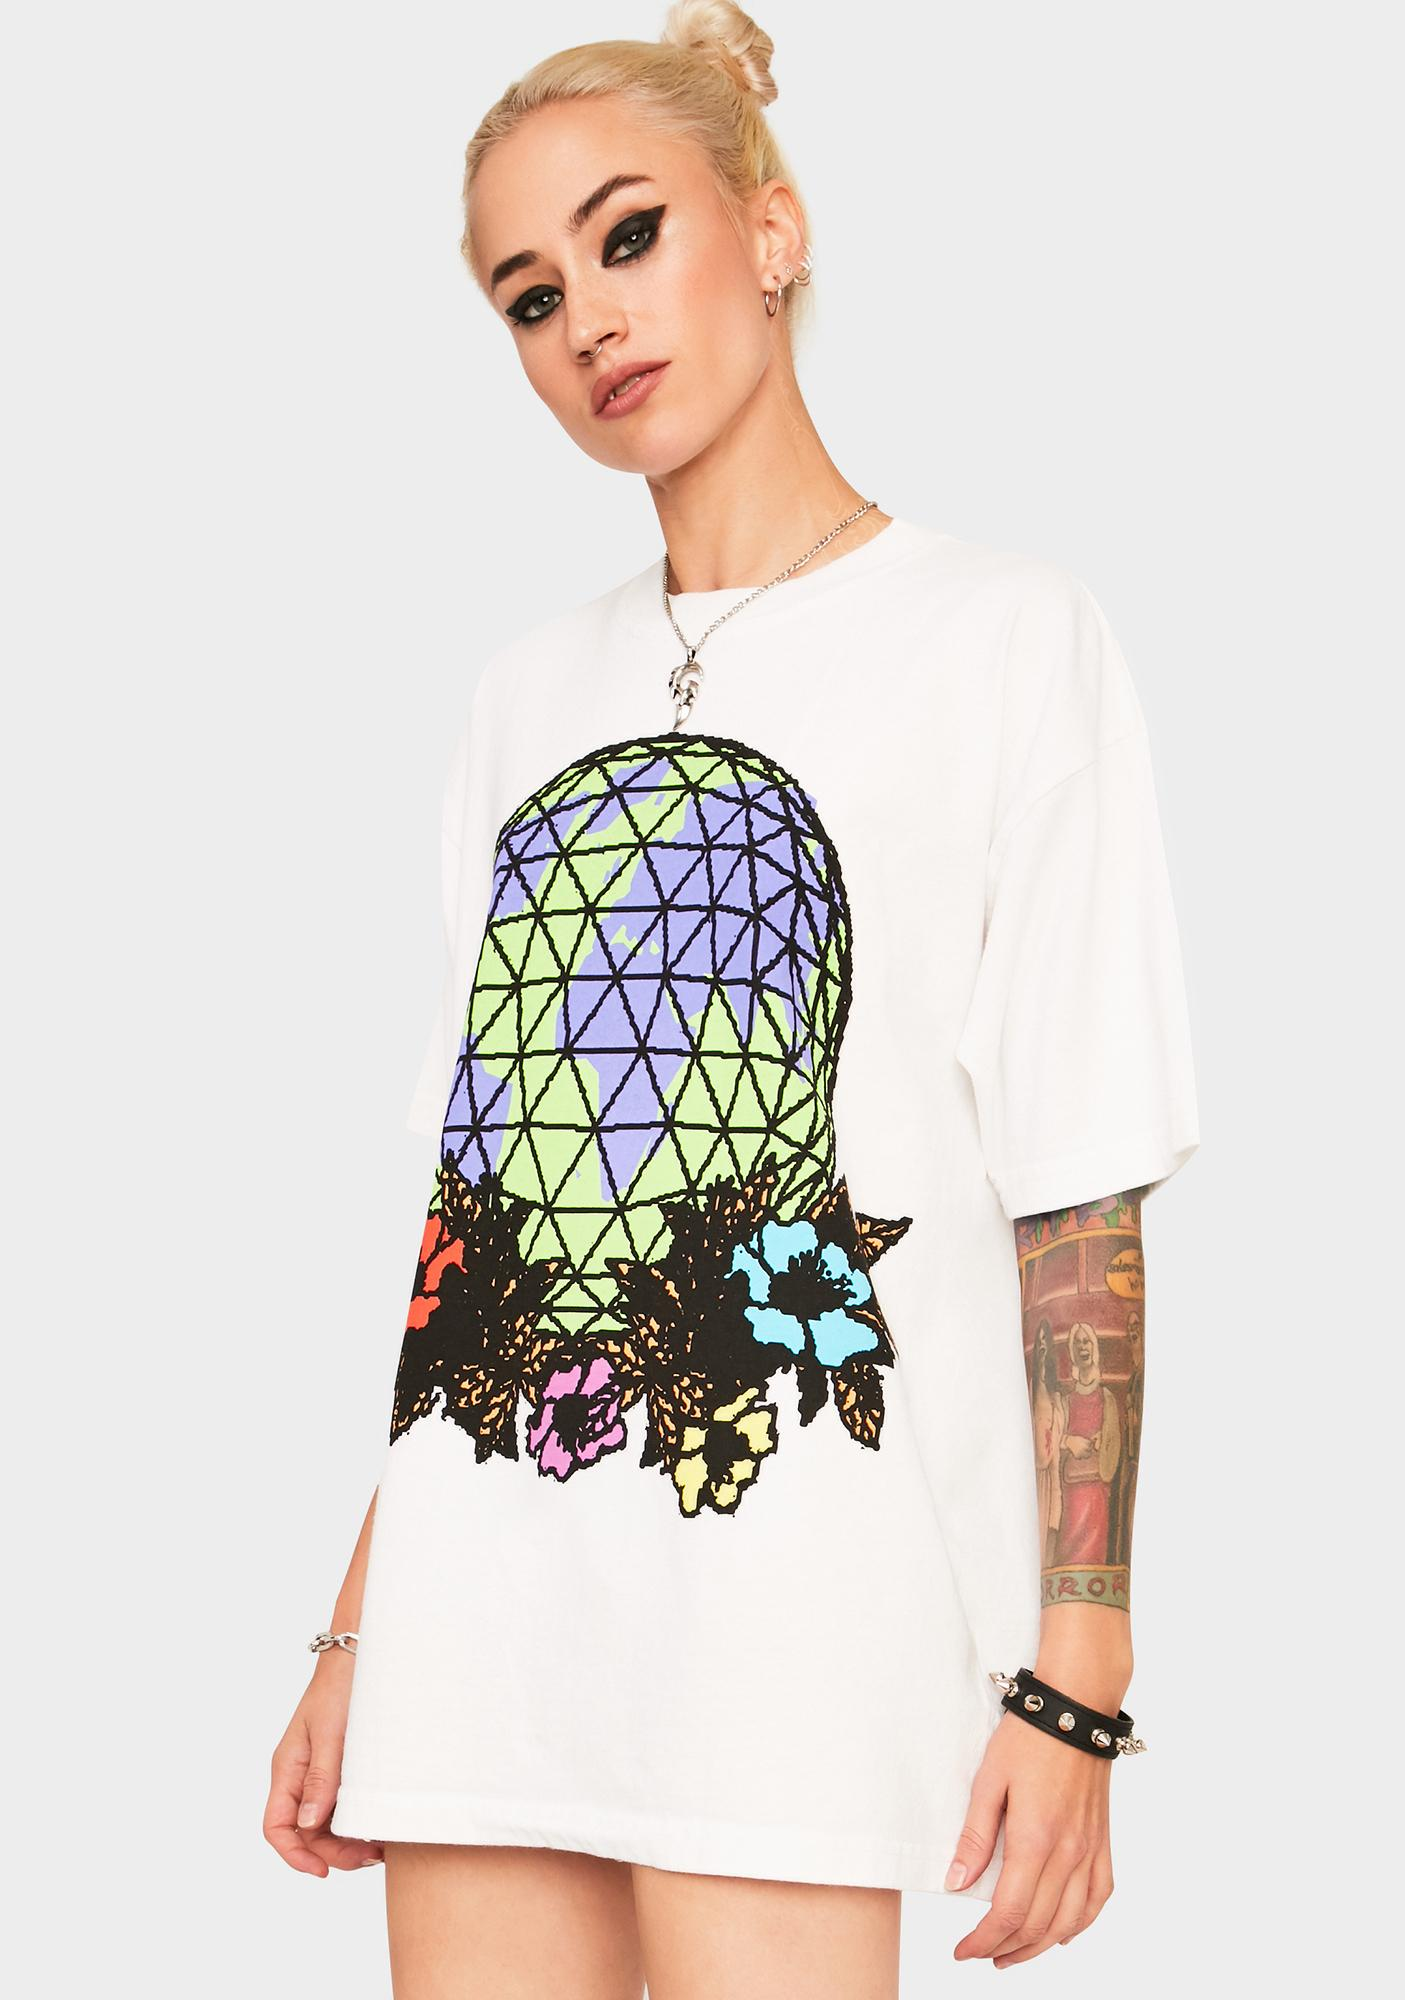 Obey Obey Floral Globe Graphic Tee